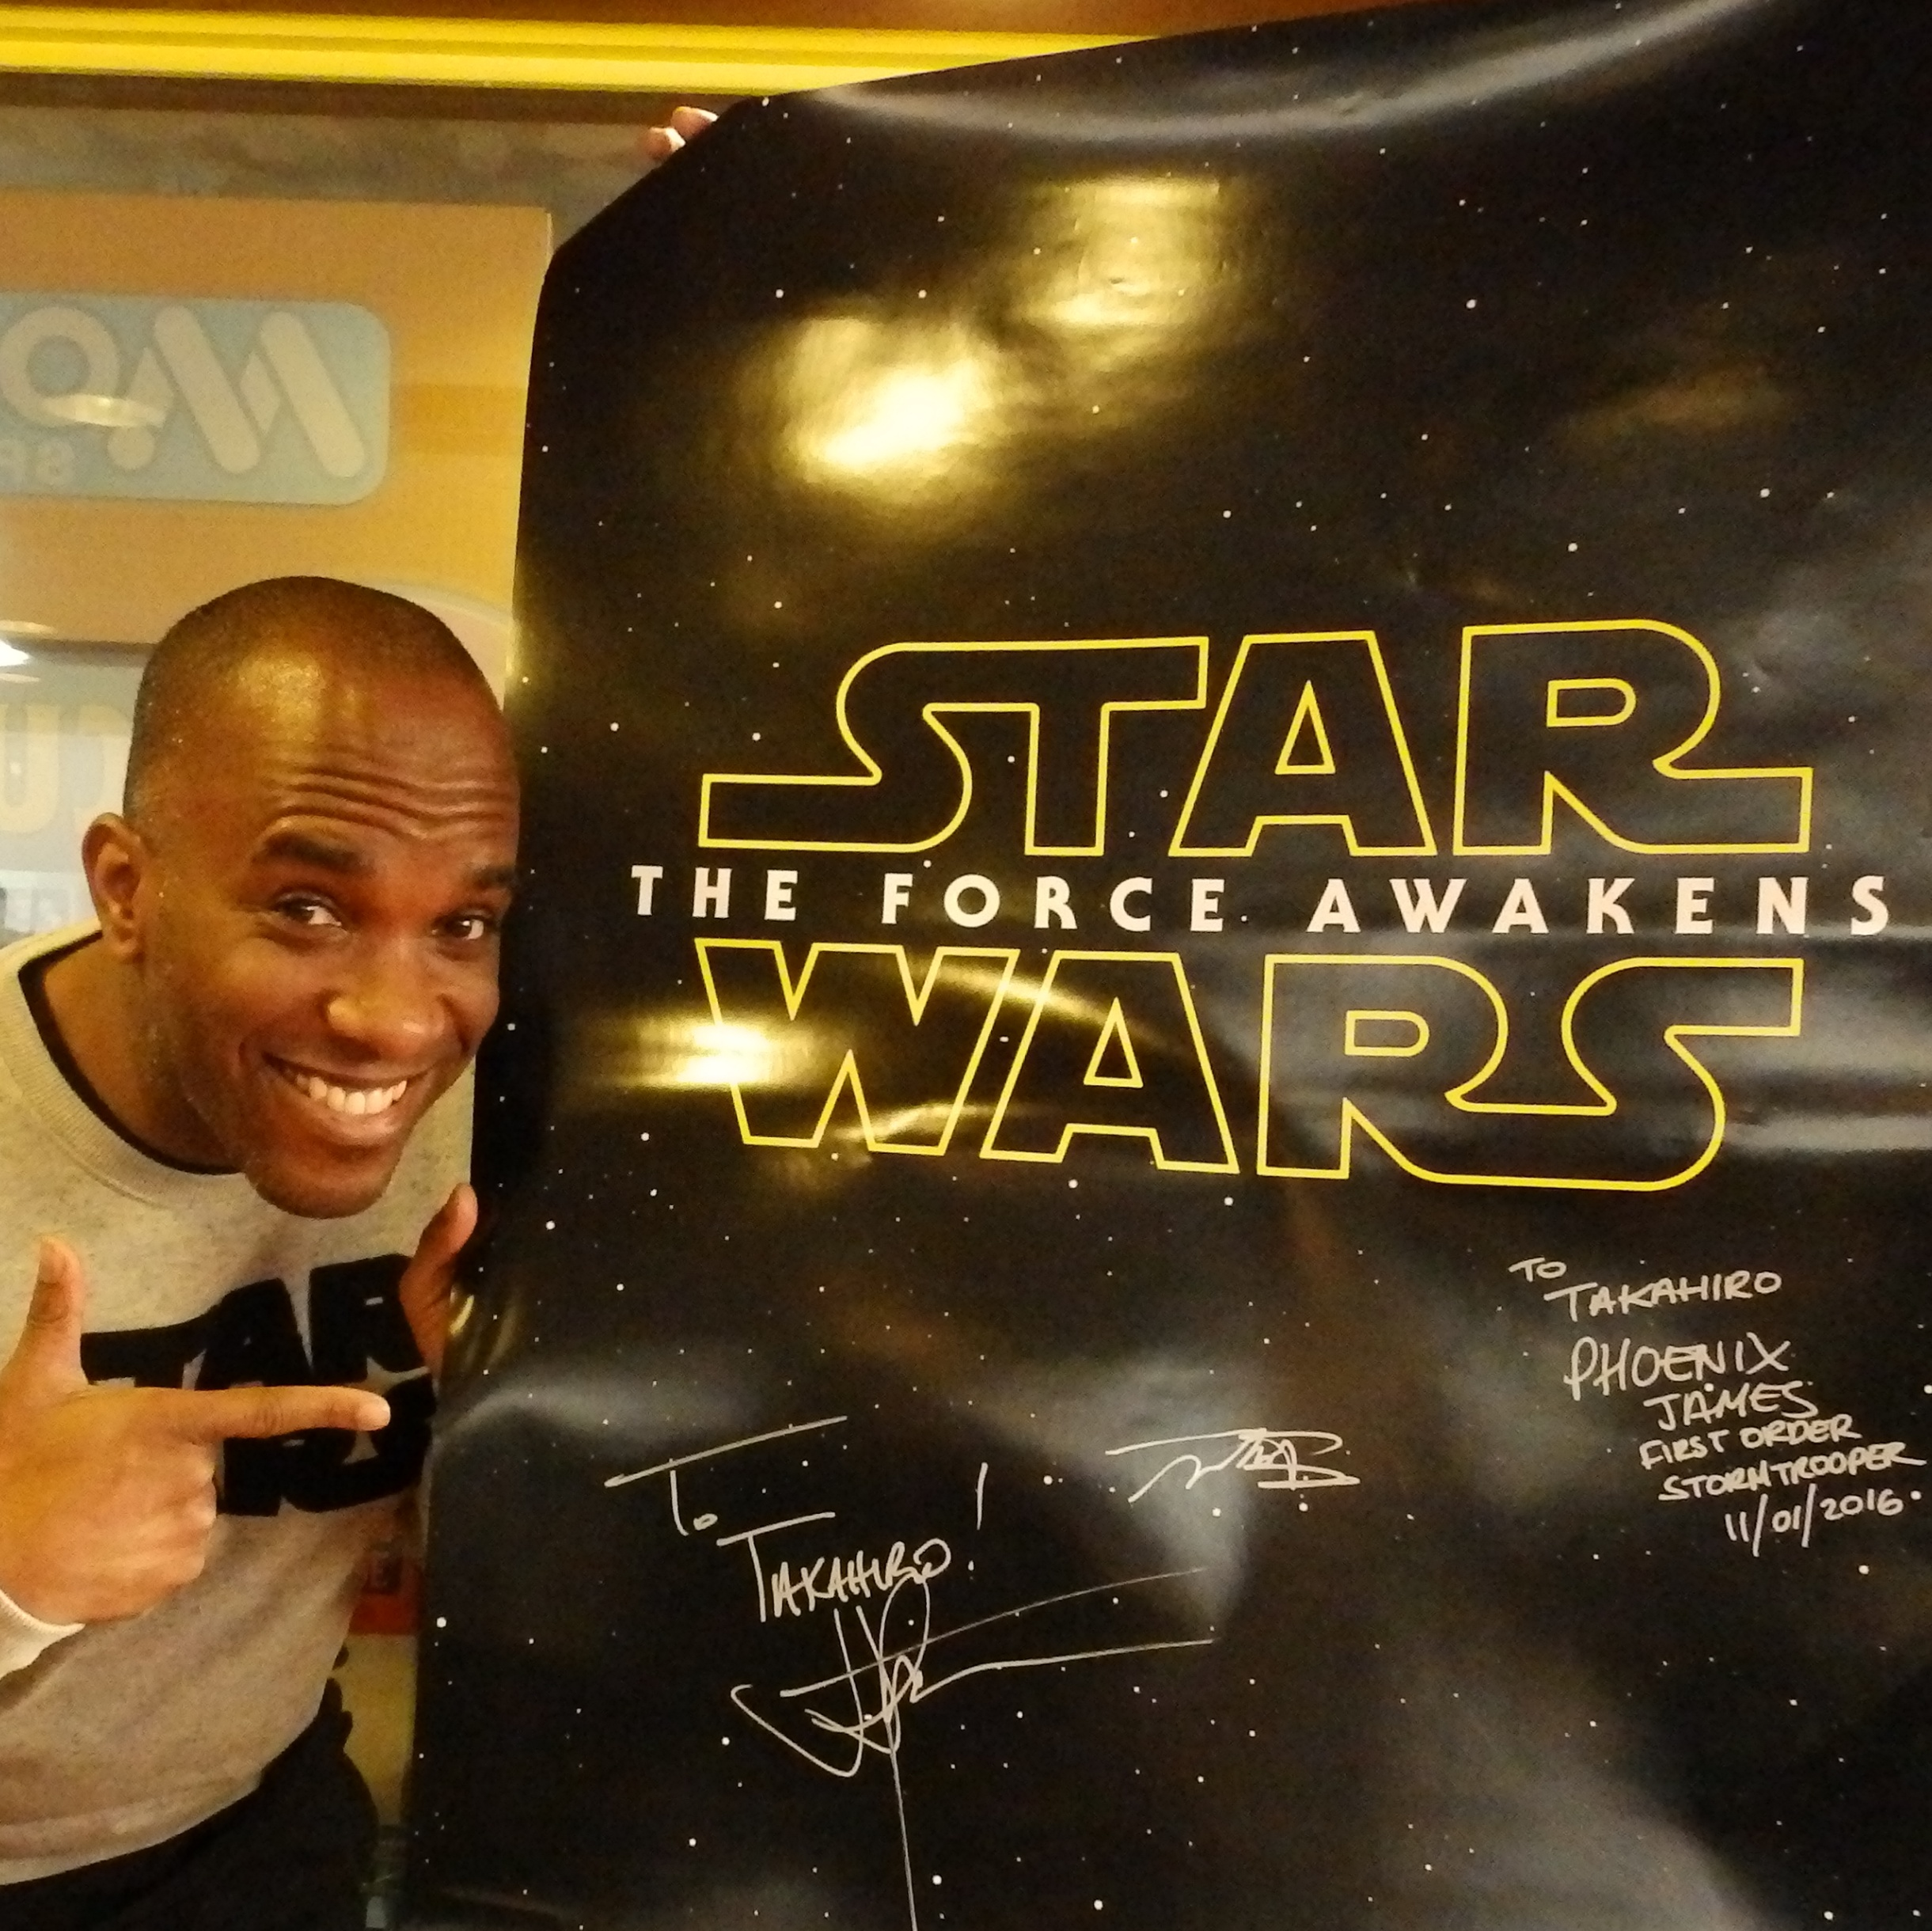 Phoenix James - First Order Stormtrooper Actor - Autograph Signing Tour in Tokyo, Japan 6